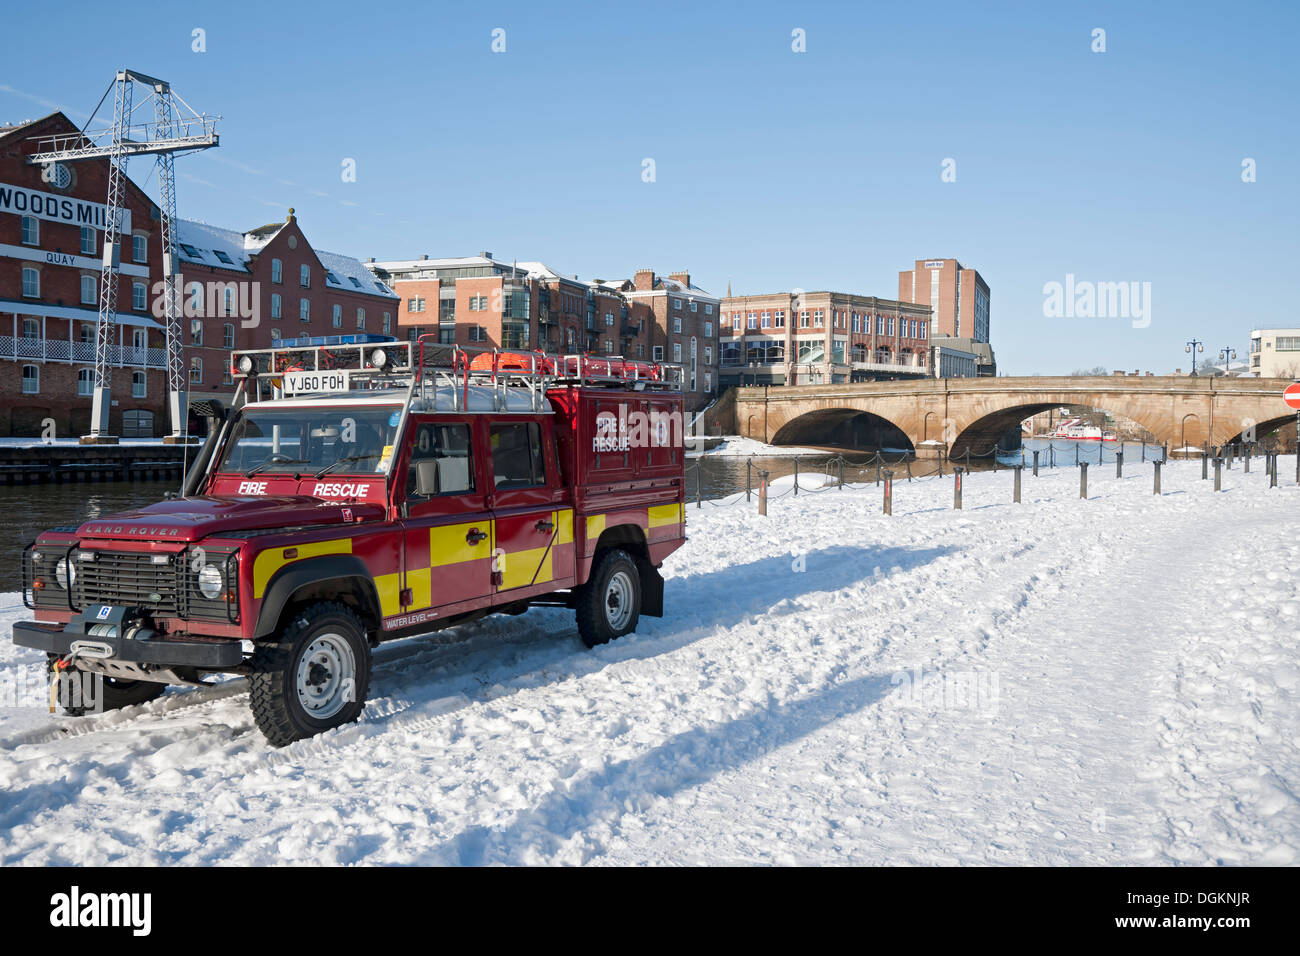 North Yorkshire Fire and Rescue Land Rover parked in the snow. - Stock Image